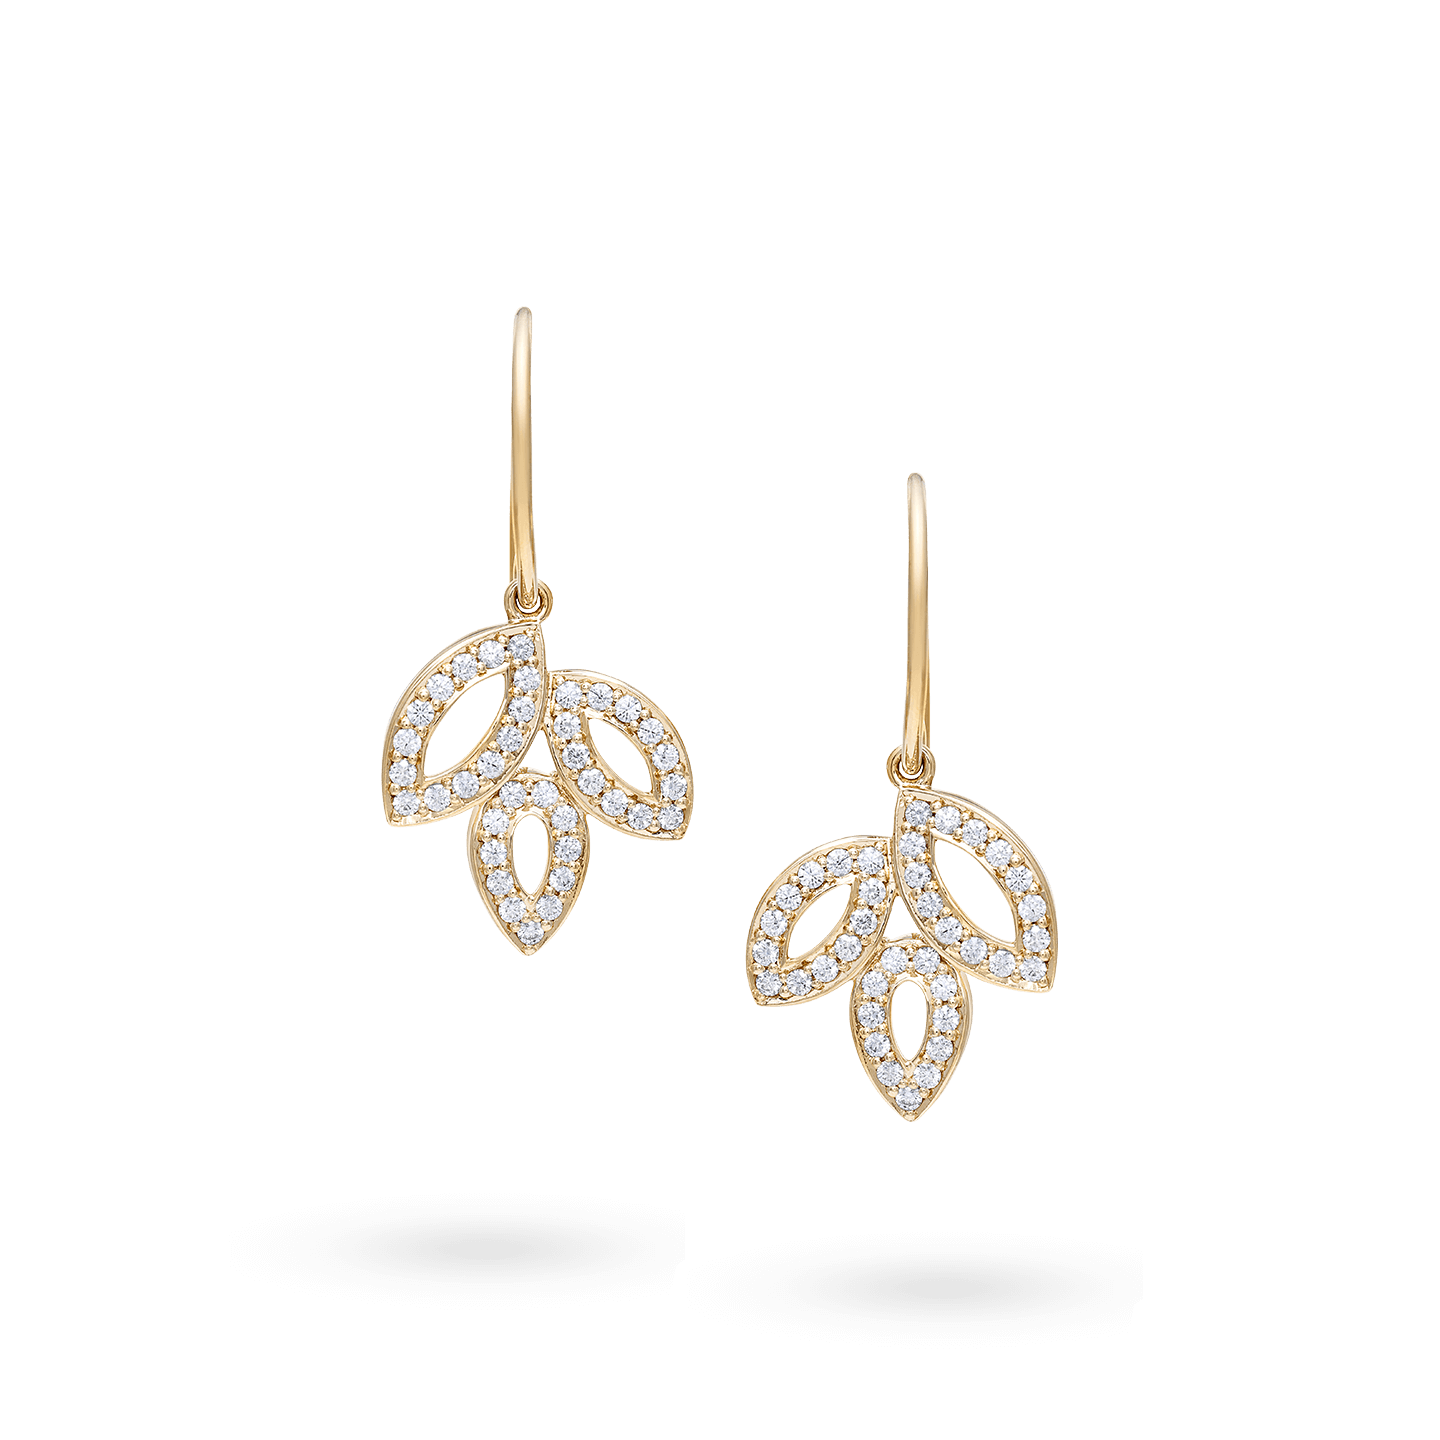 Lily Cluster Small Diamond Earrings on Yellow Gold Wire, Product Image 1